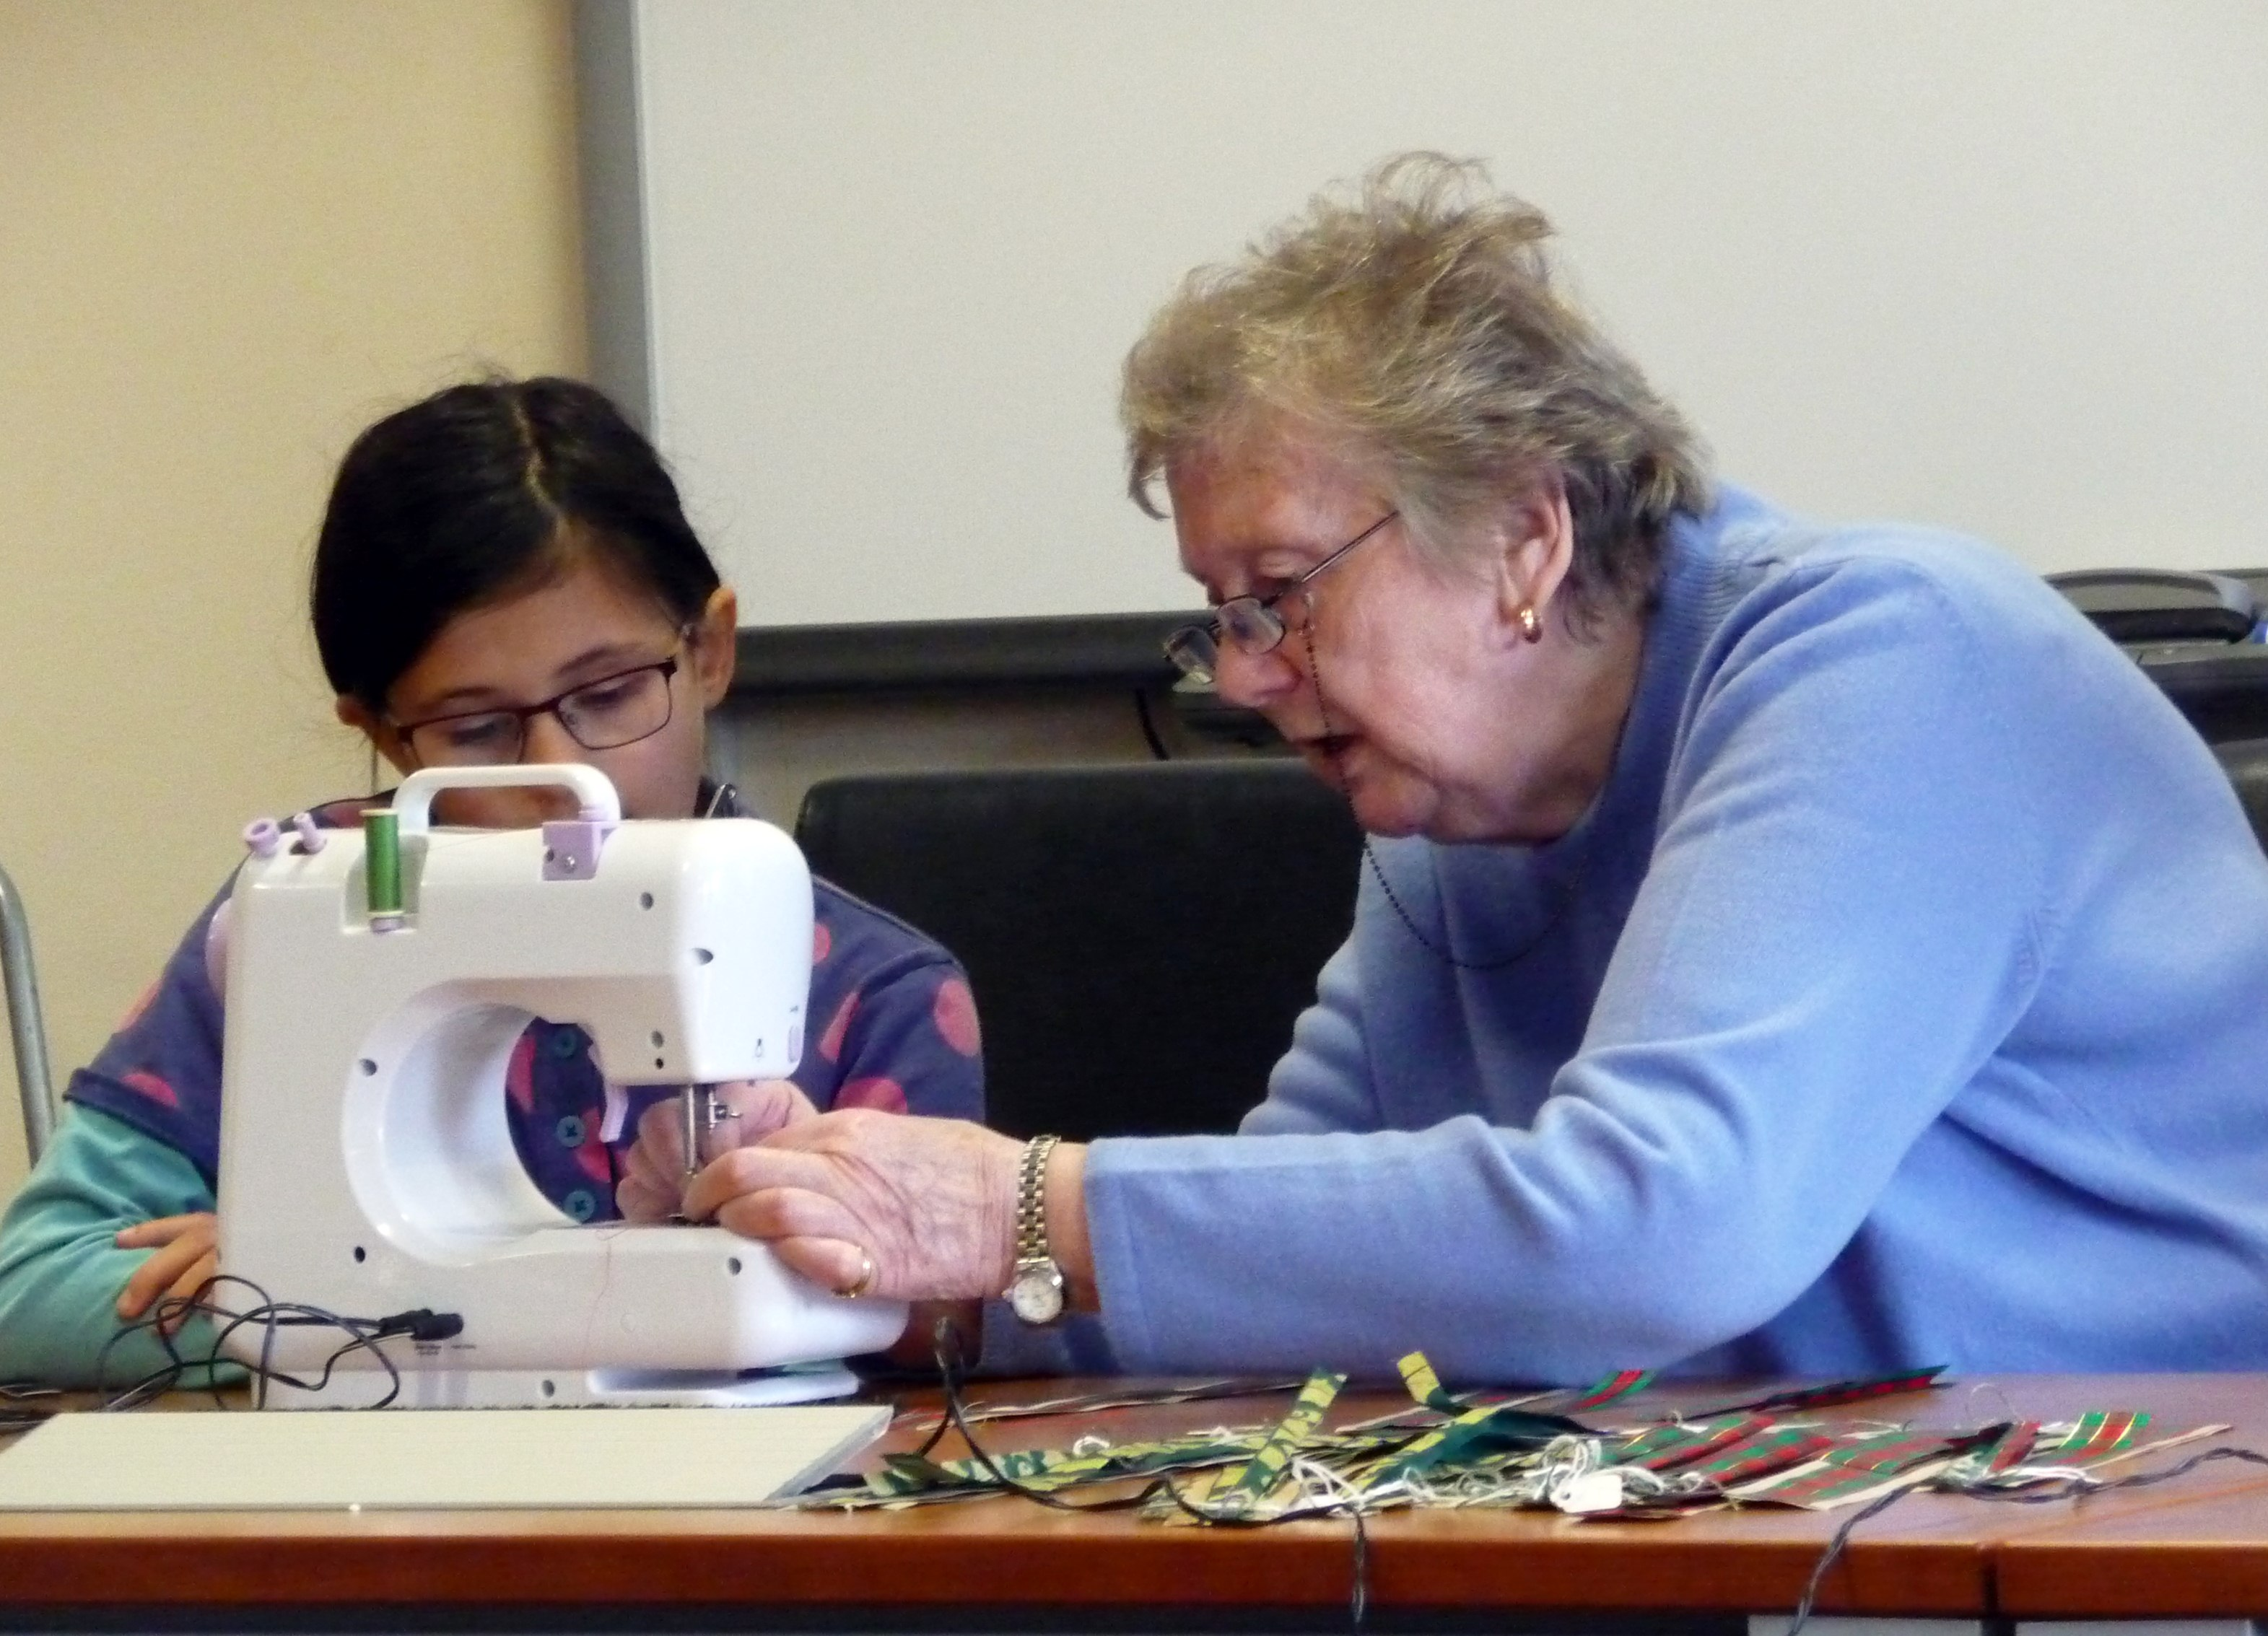 Val is helping Zoe with the sewing machine at our Nov 2015 YE meeting